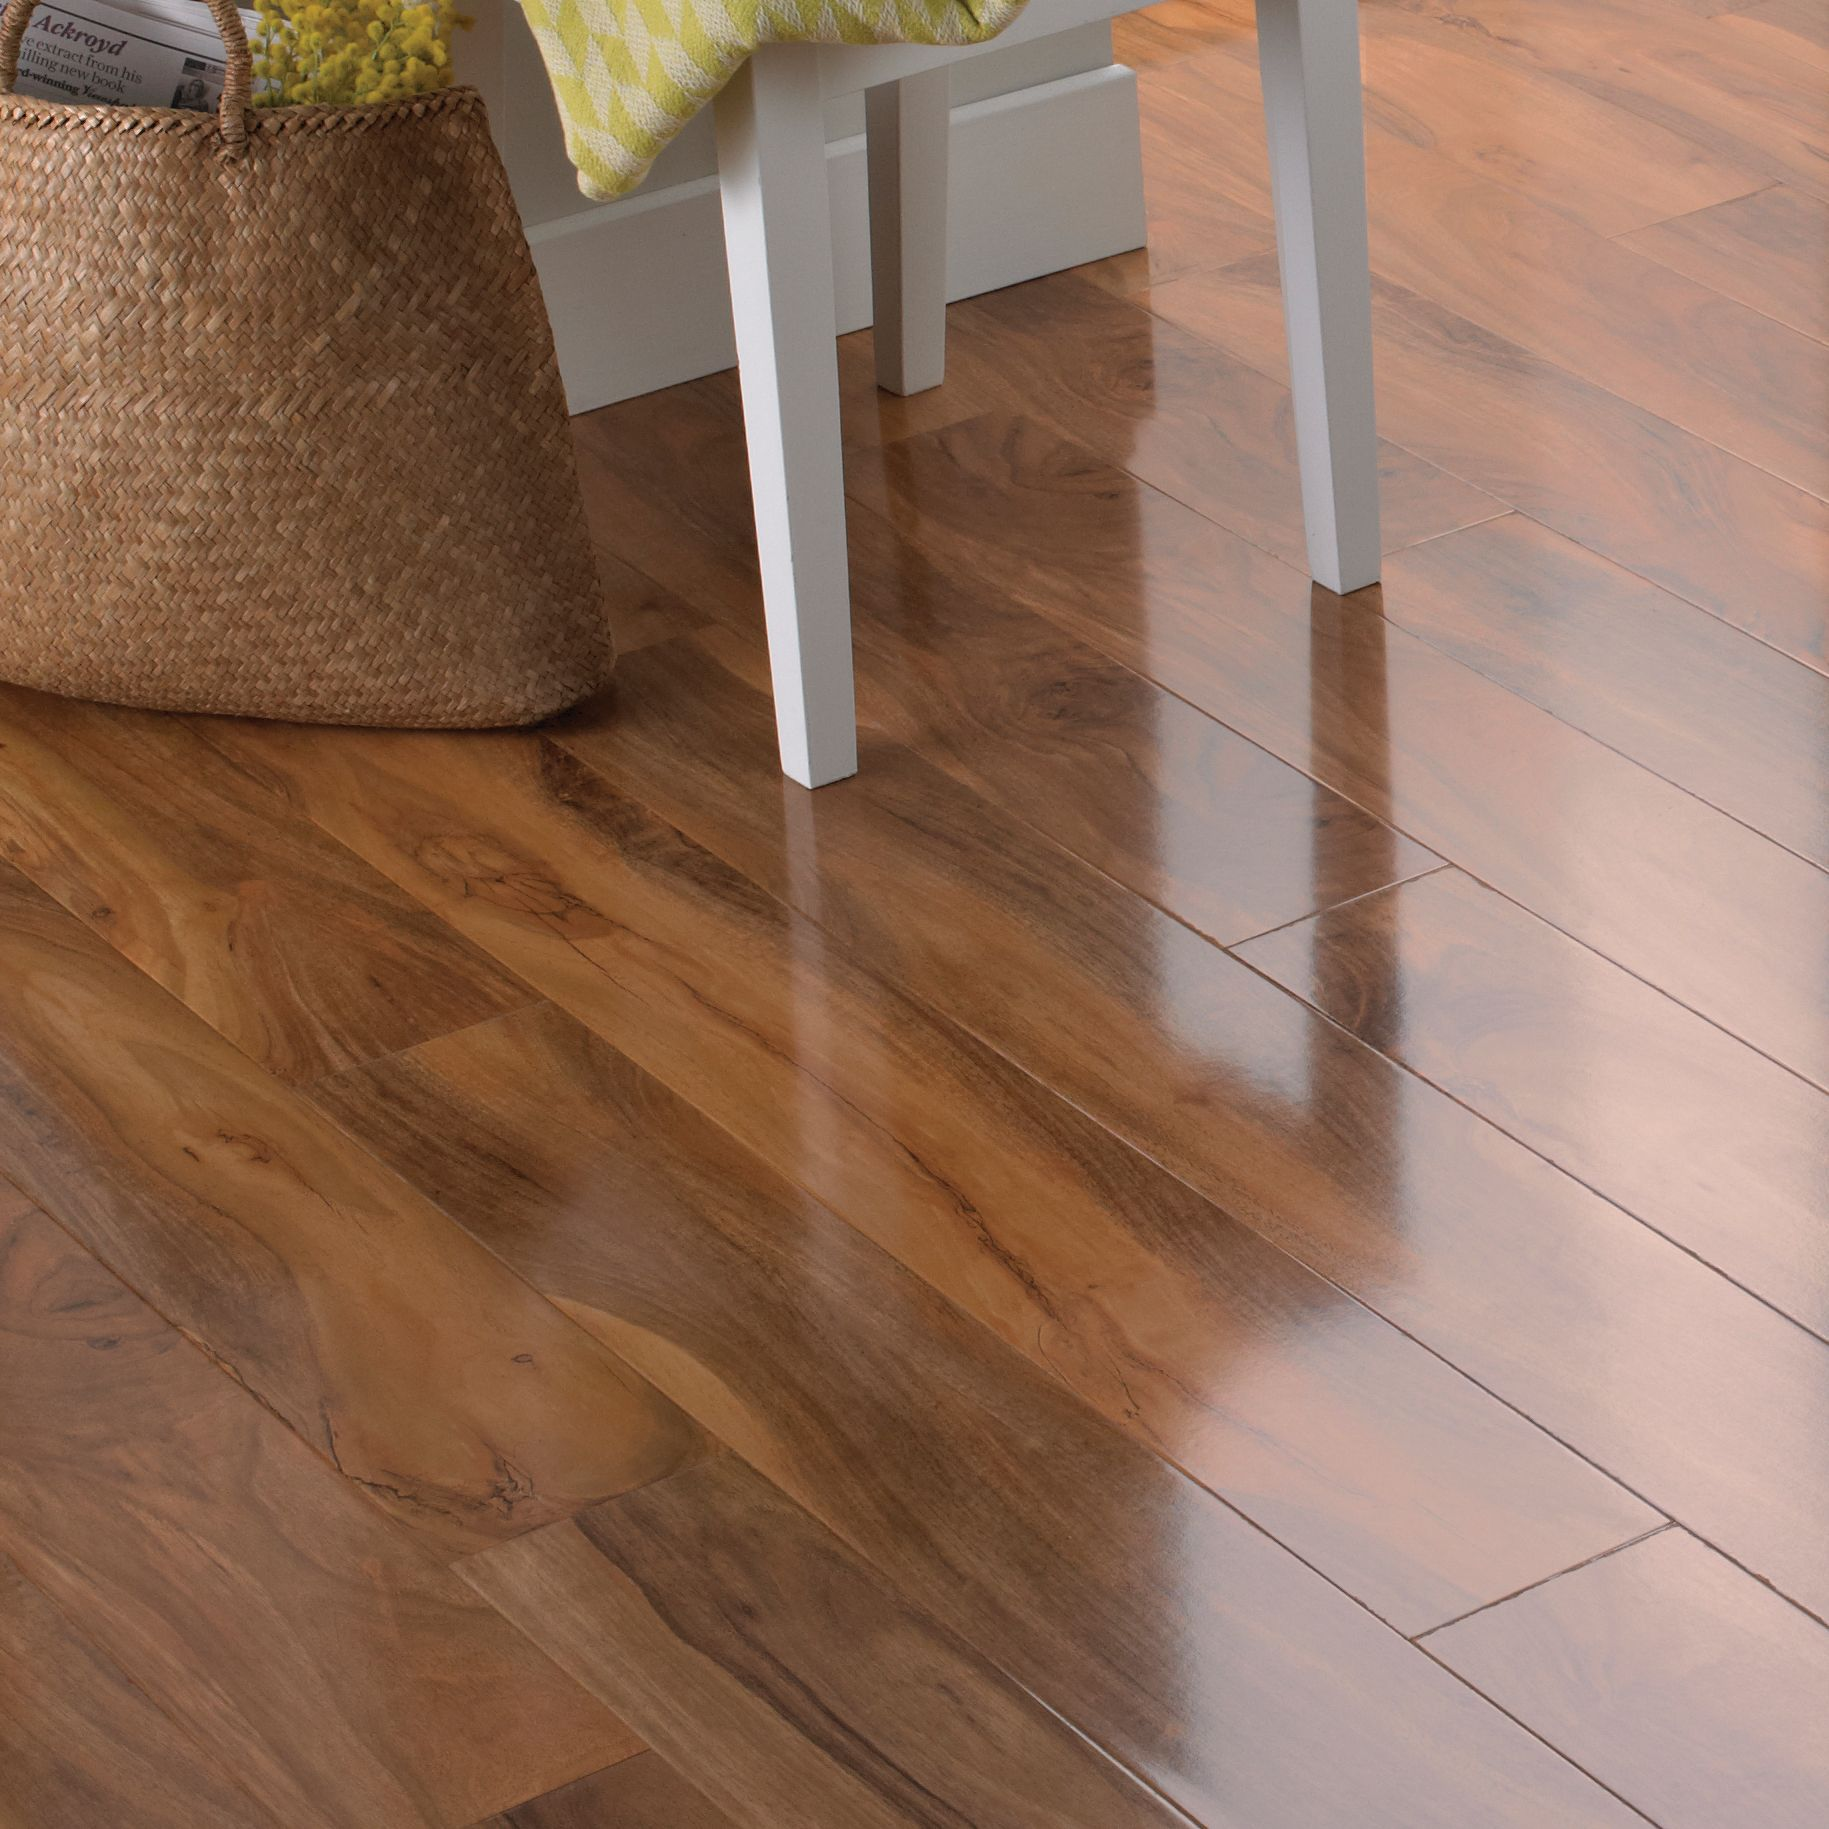 Dolce natural walnut effect laminate flooring m pack - Laminate or wood flooring ...